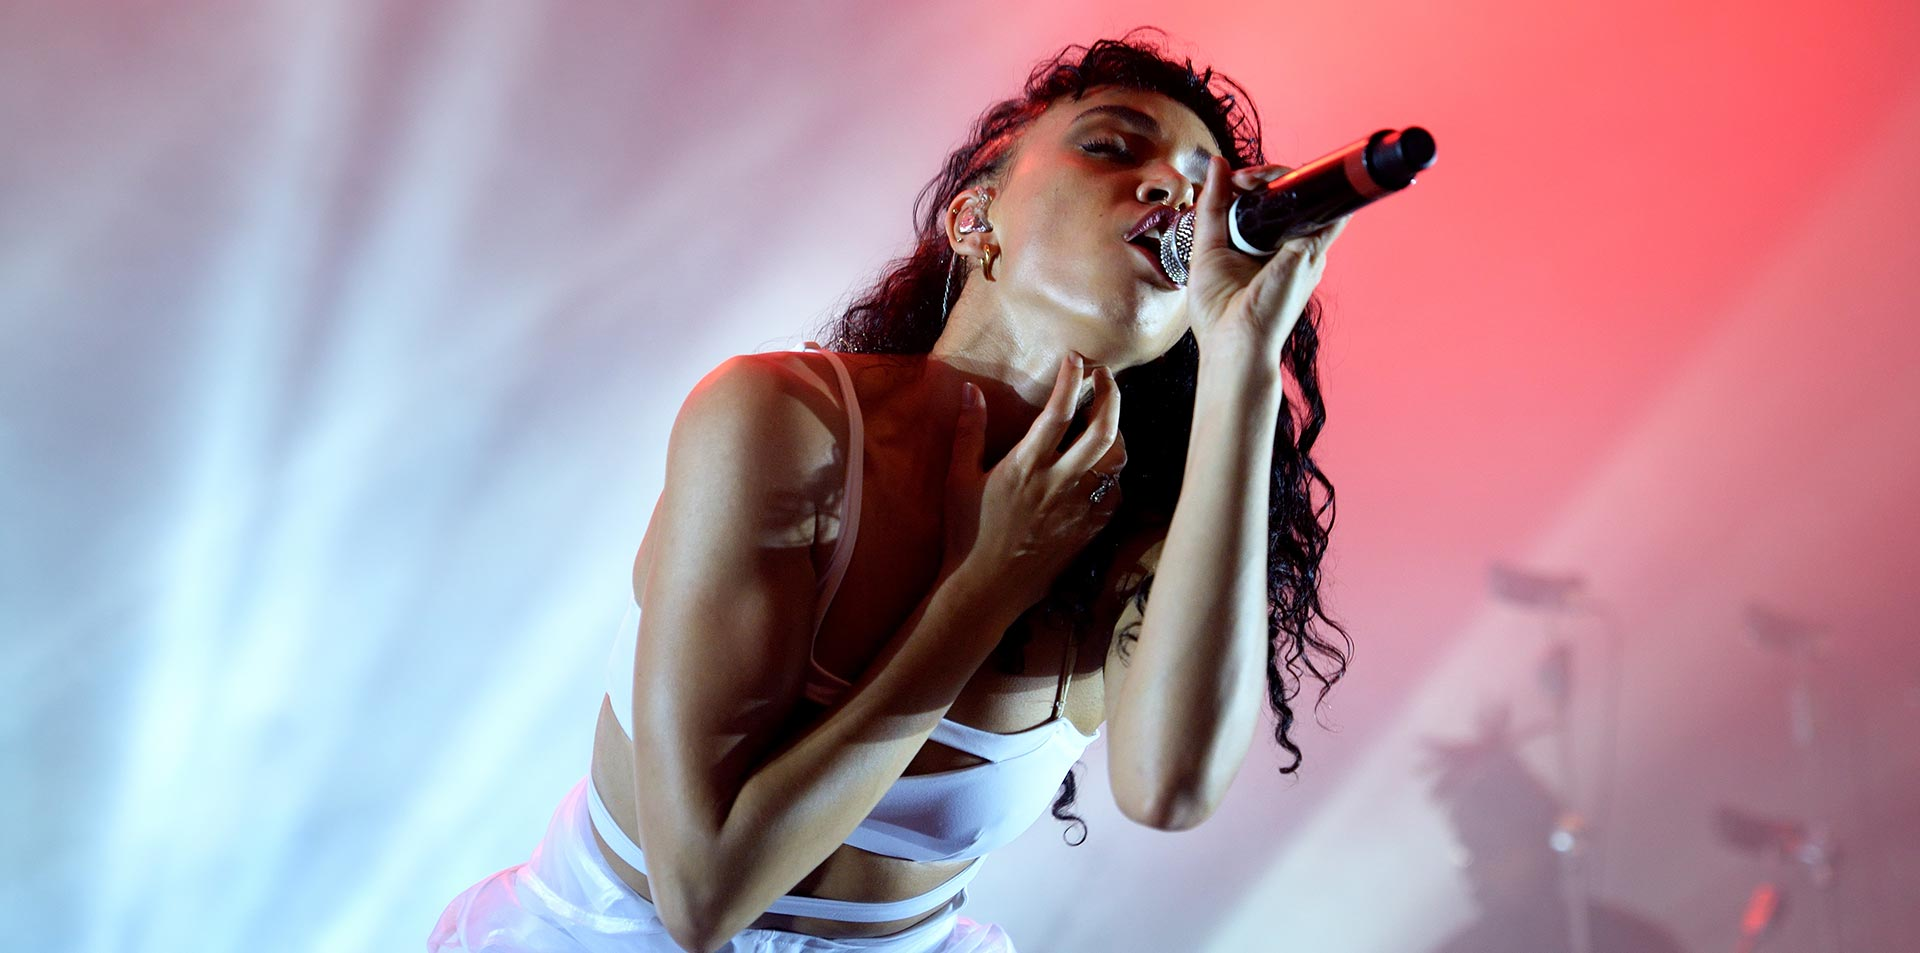 Photo of Rihanna Has the No. 1 Album Again, Arcade Fire Bumped From Top 10